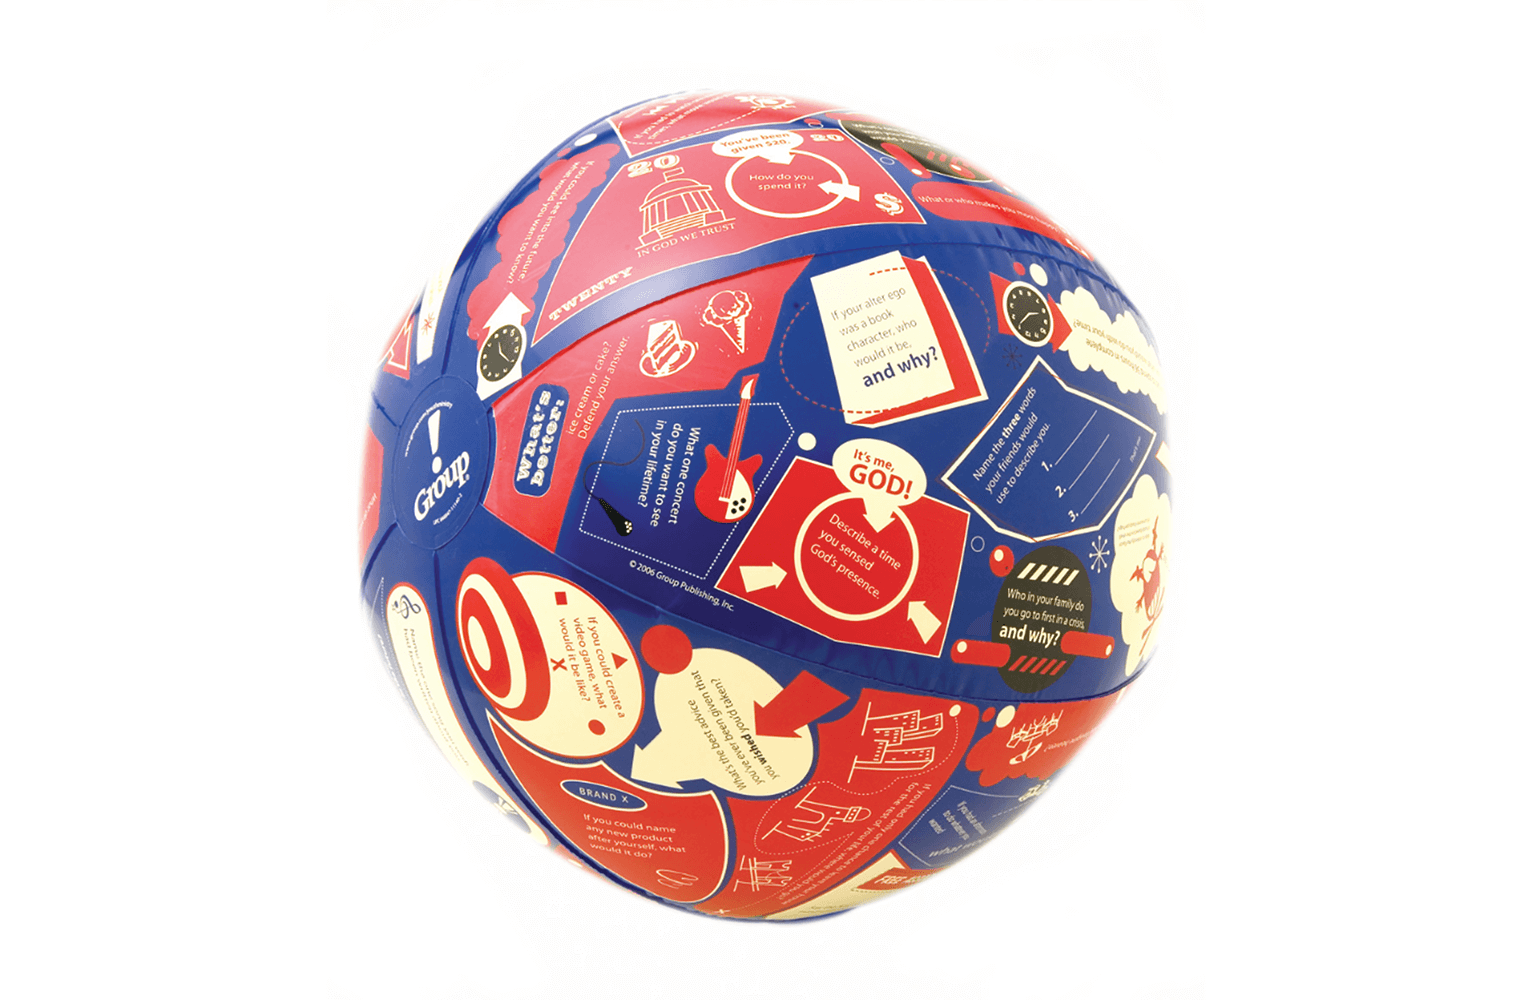 Throw and Tell Ice-Breakers Game Ball